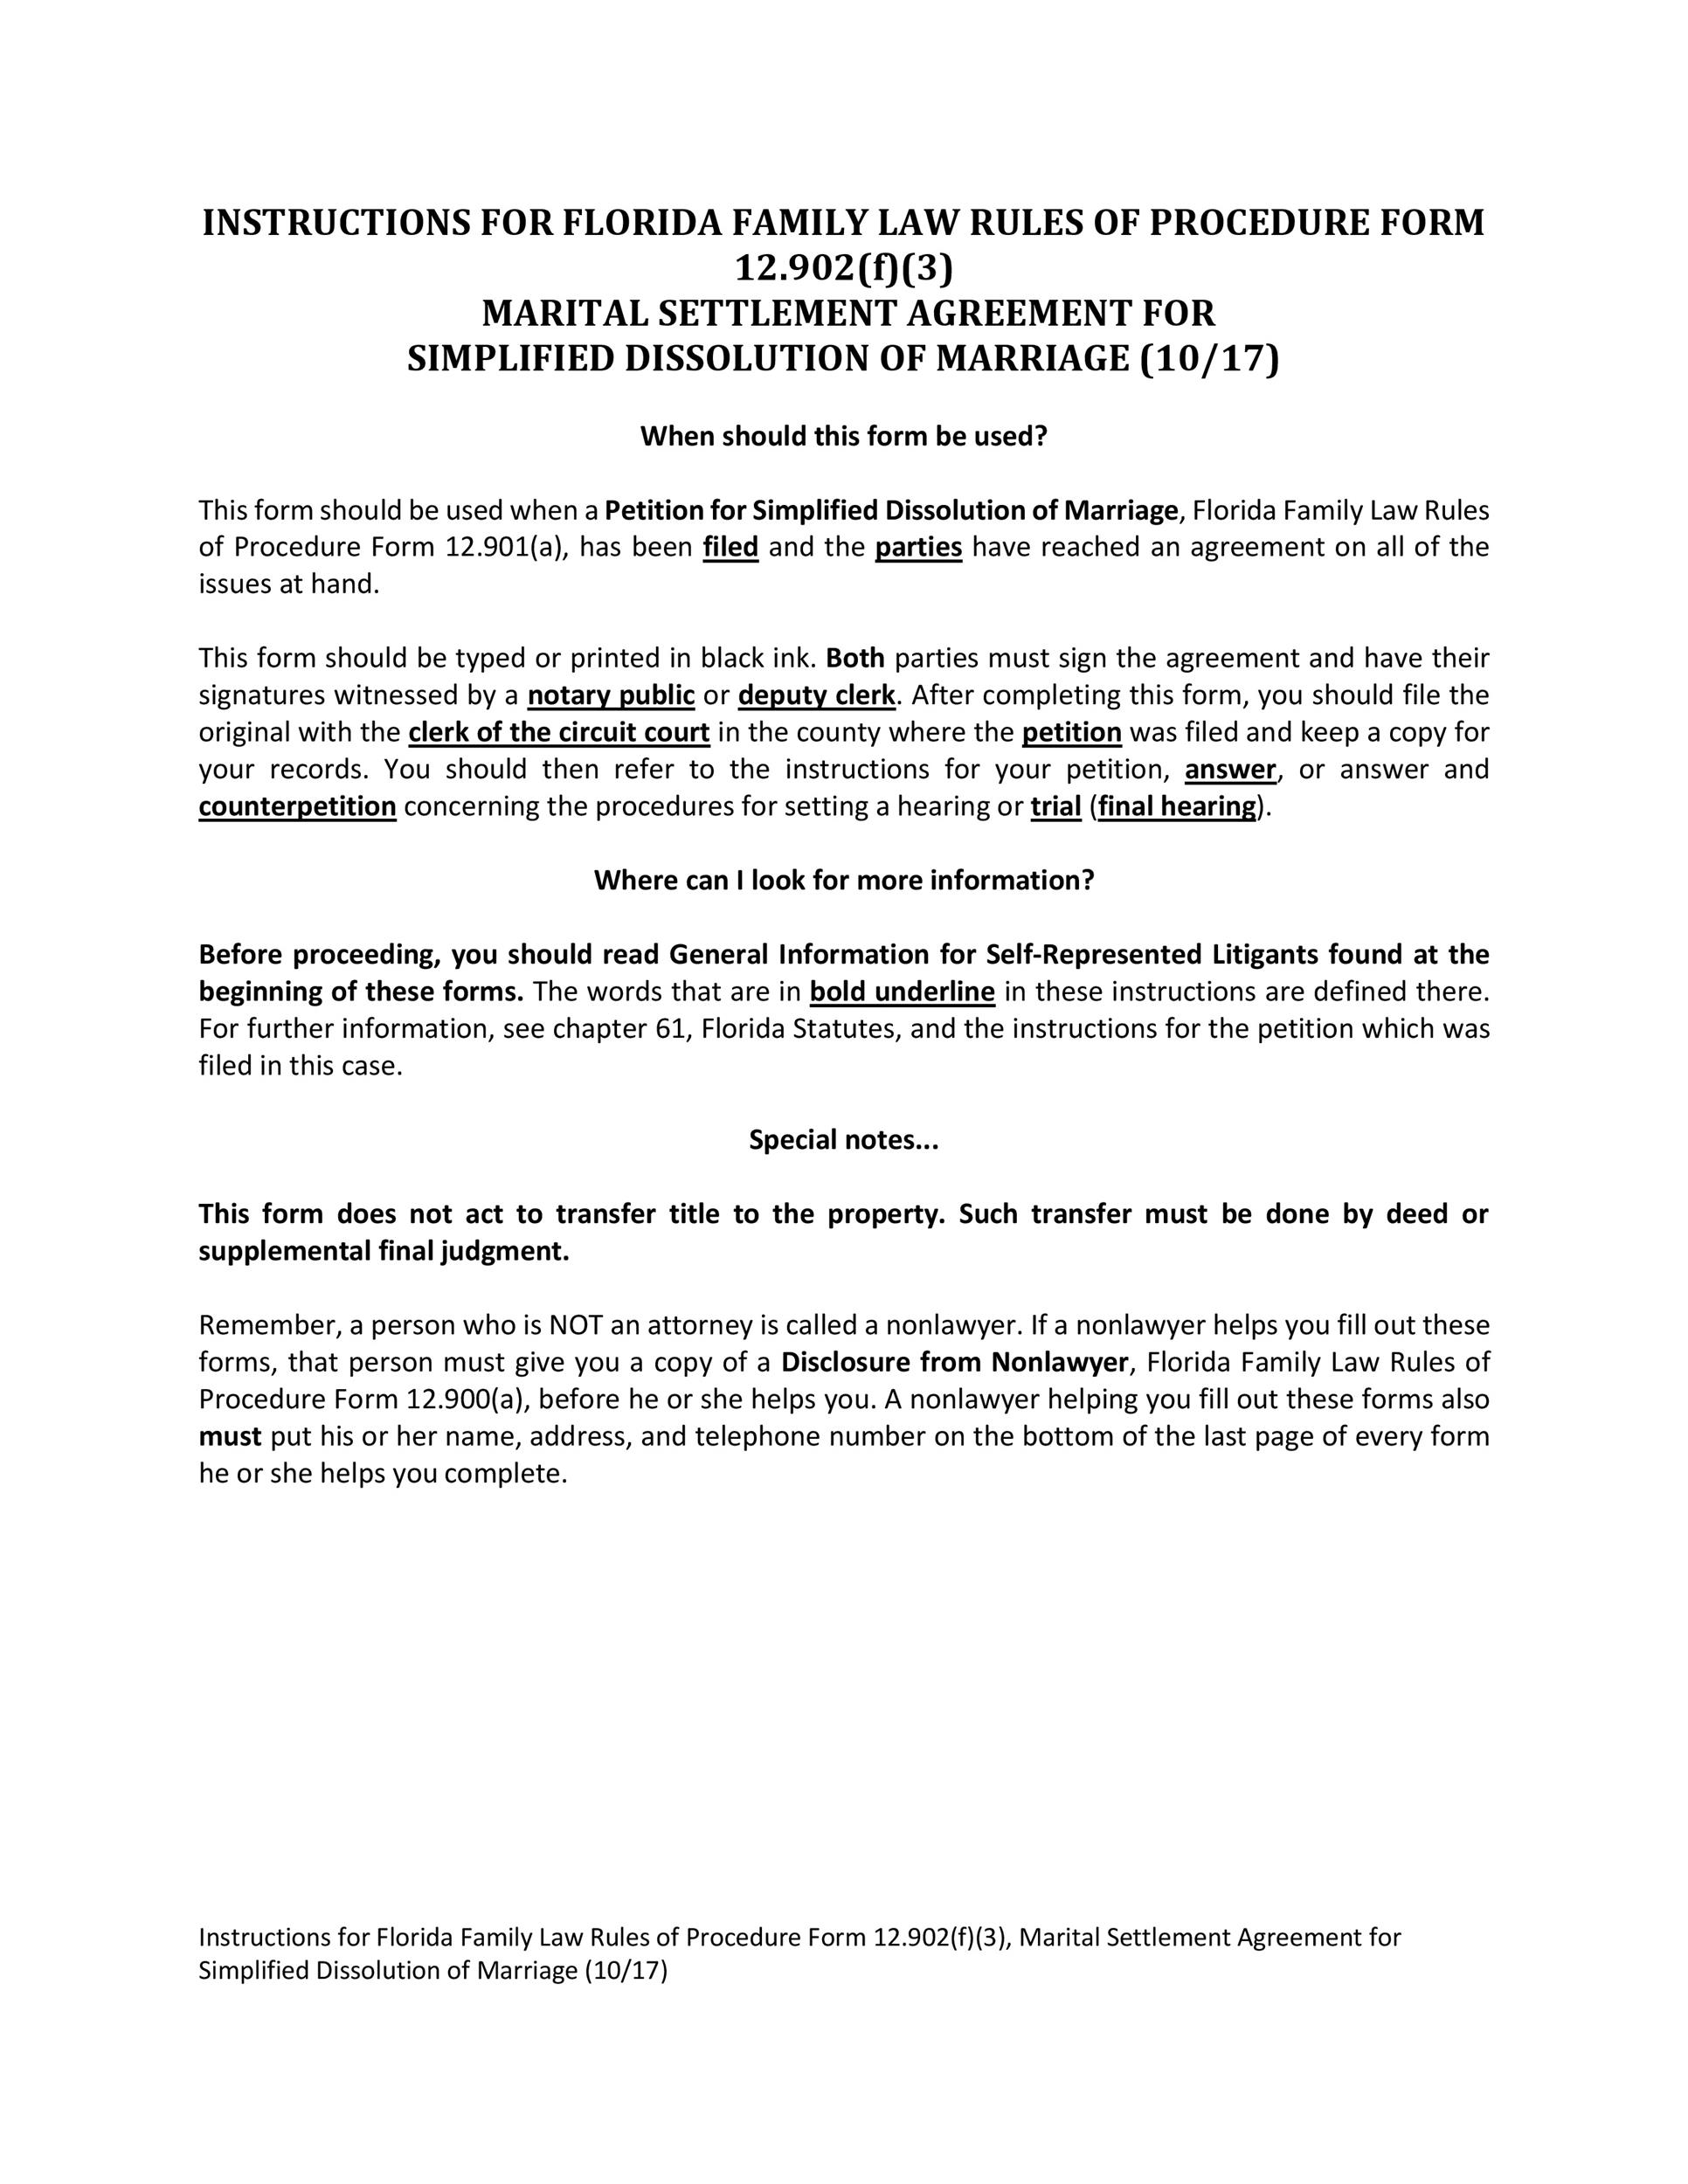 Free settlement agreement 39